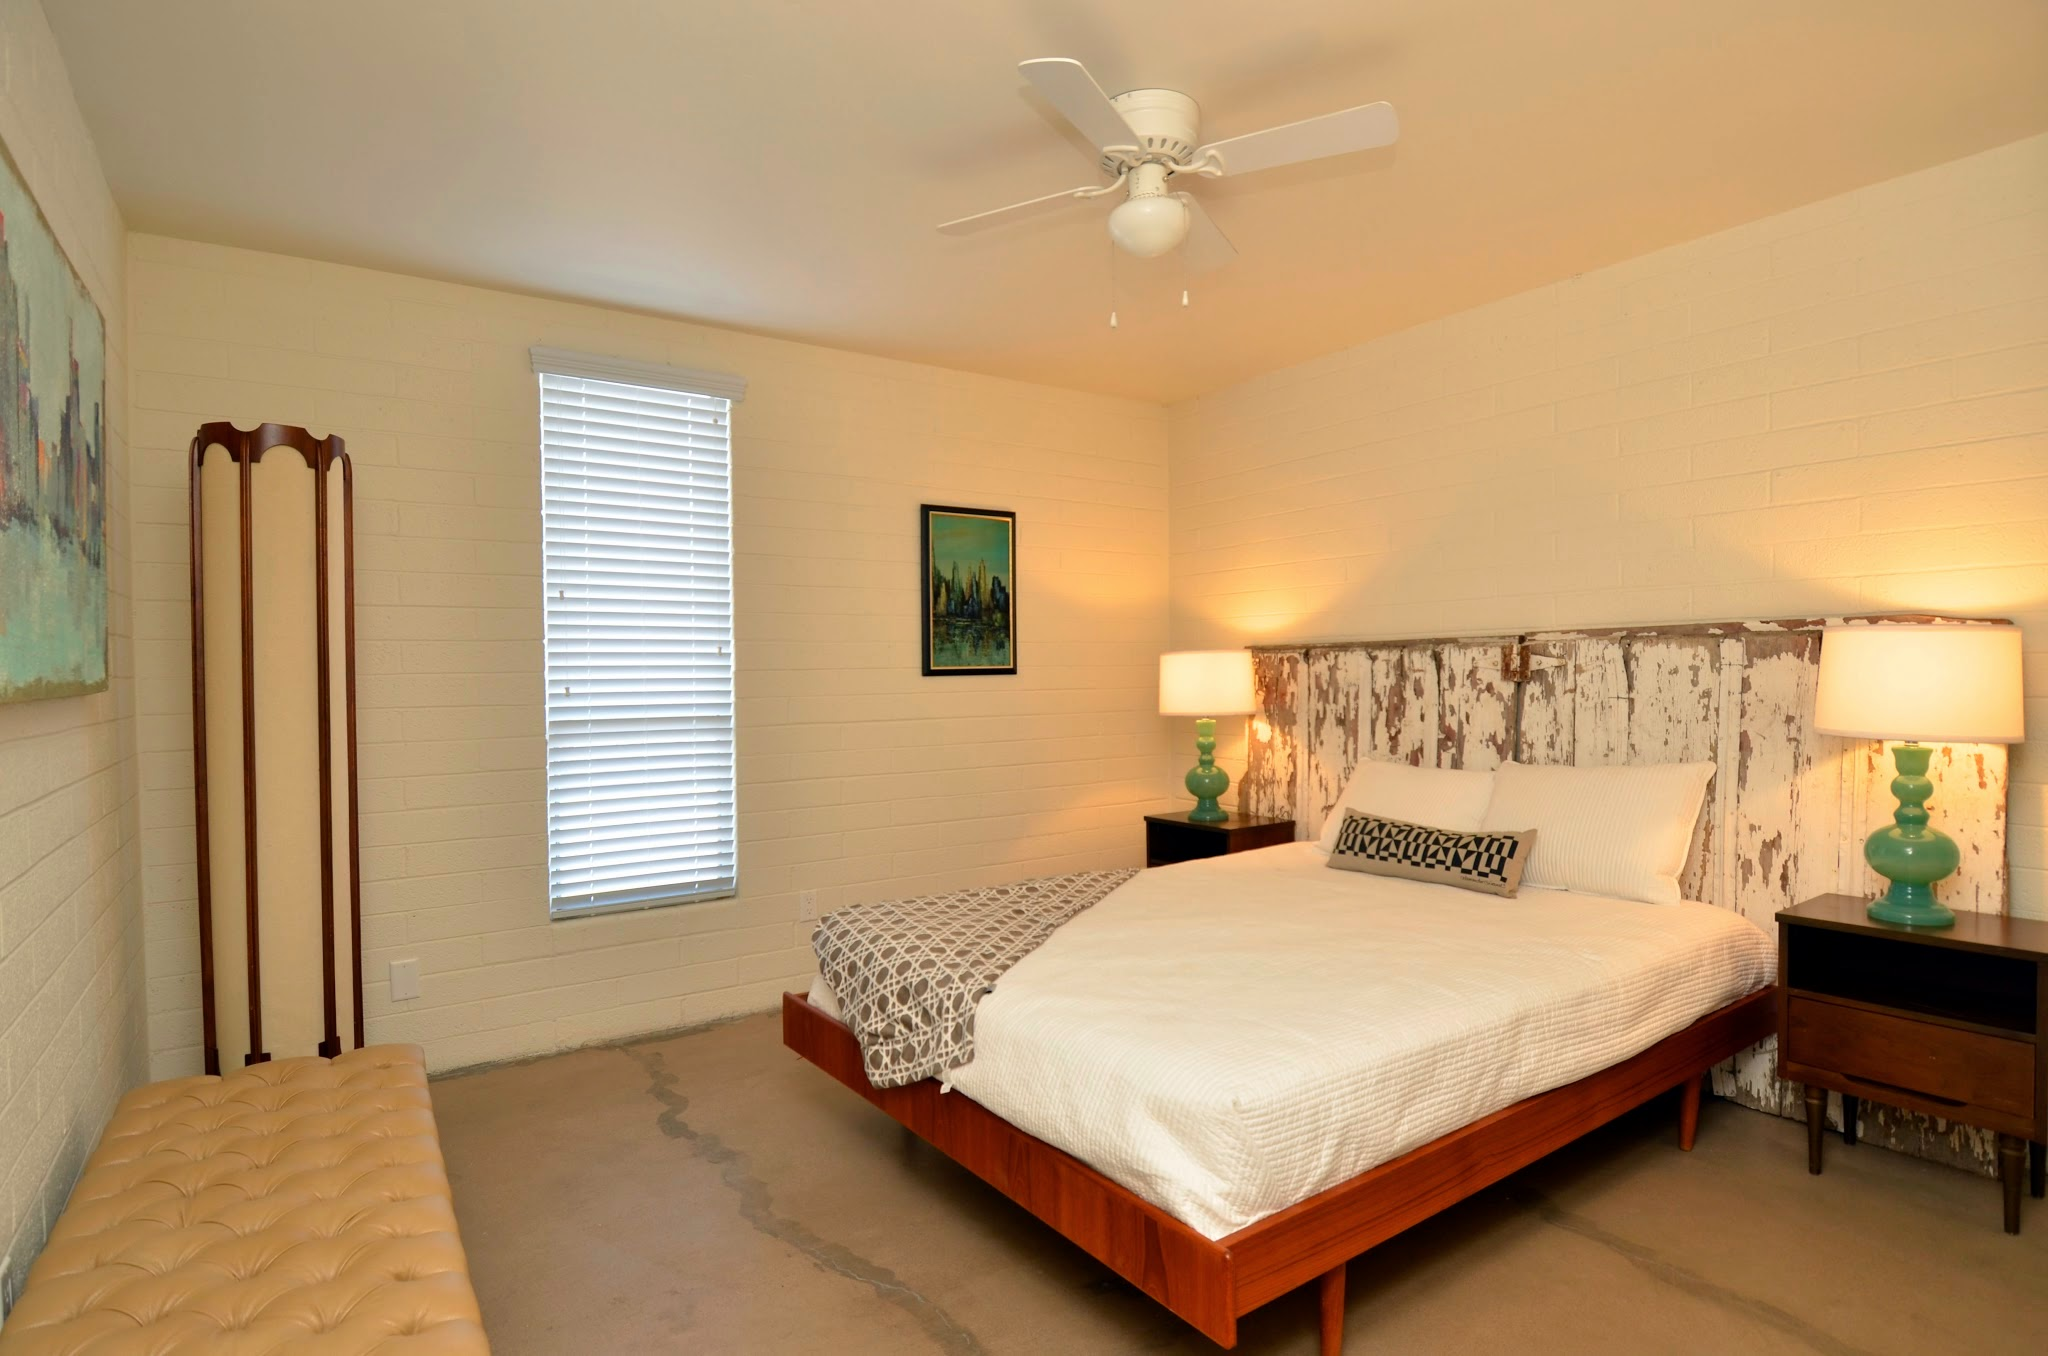 1-Bedroom Apartments at The Winfield of Scottsdale Apartments in Scottsdale, Arizona